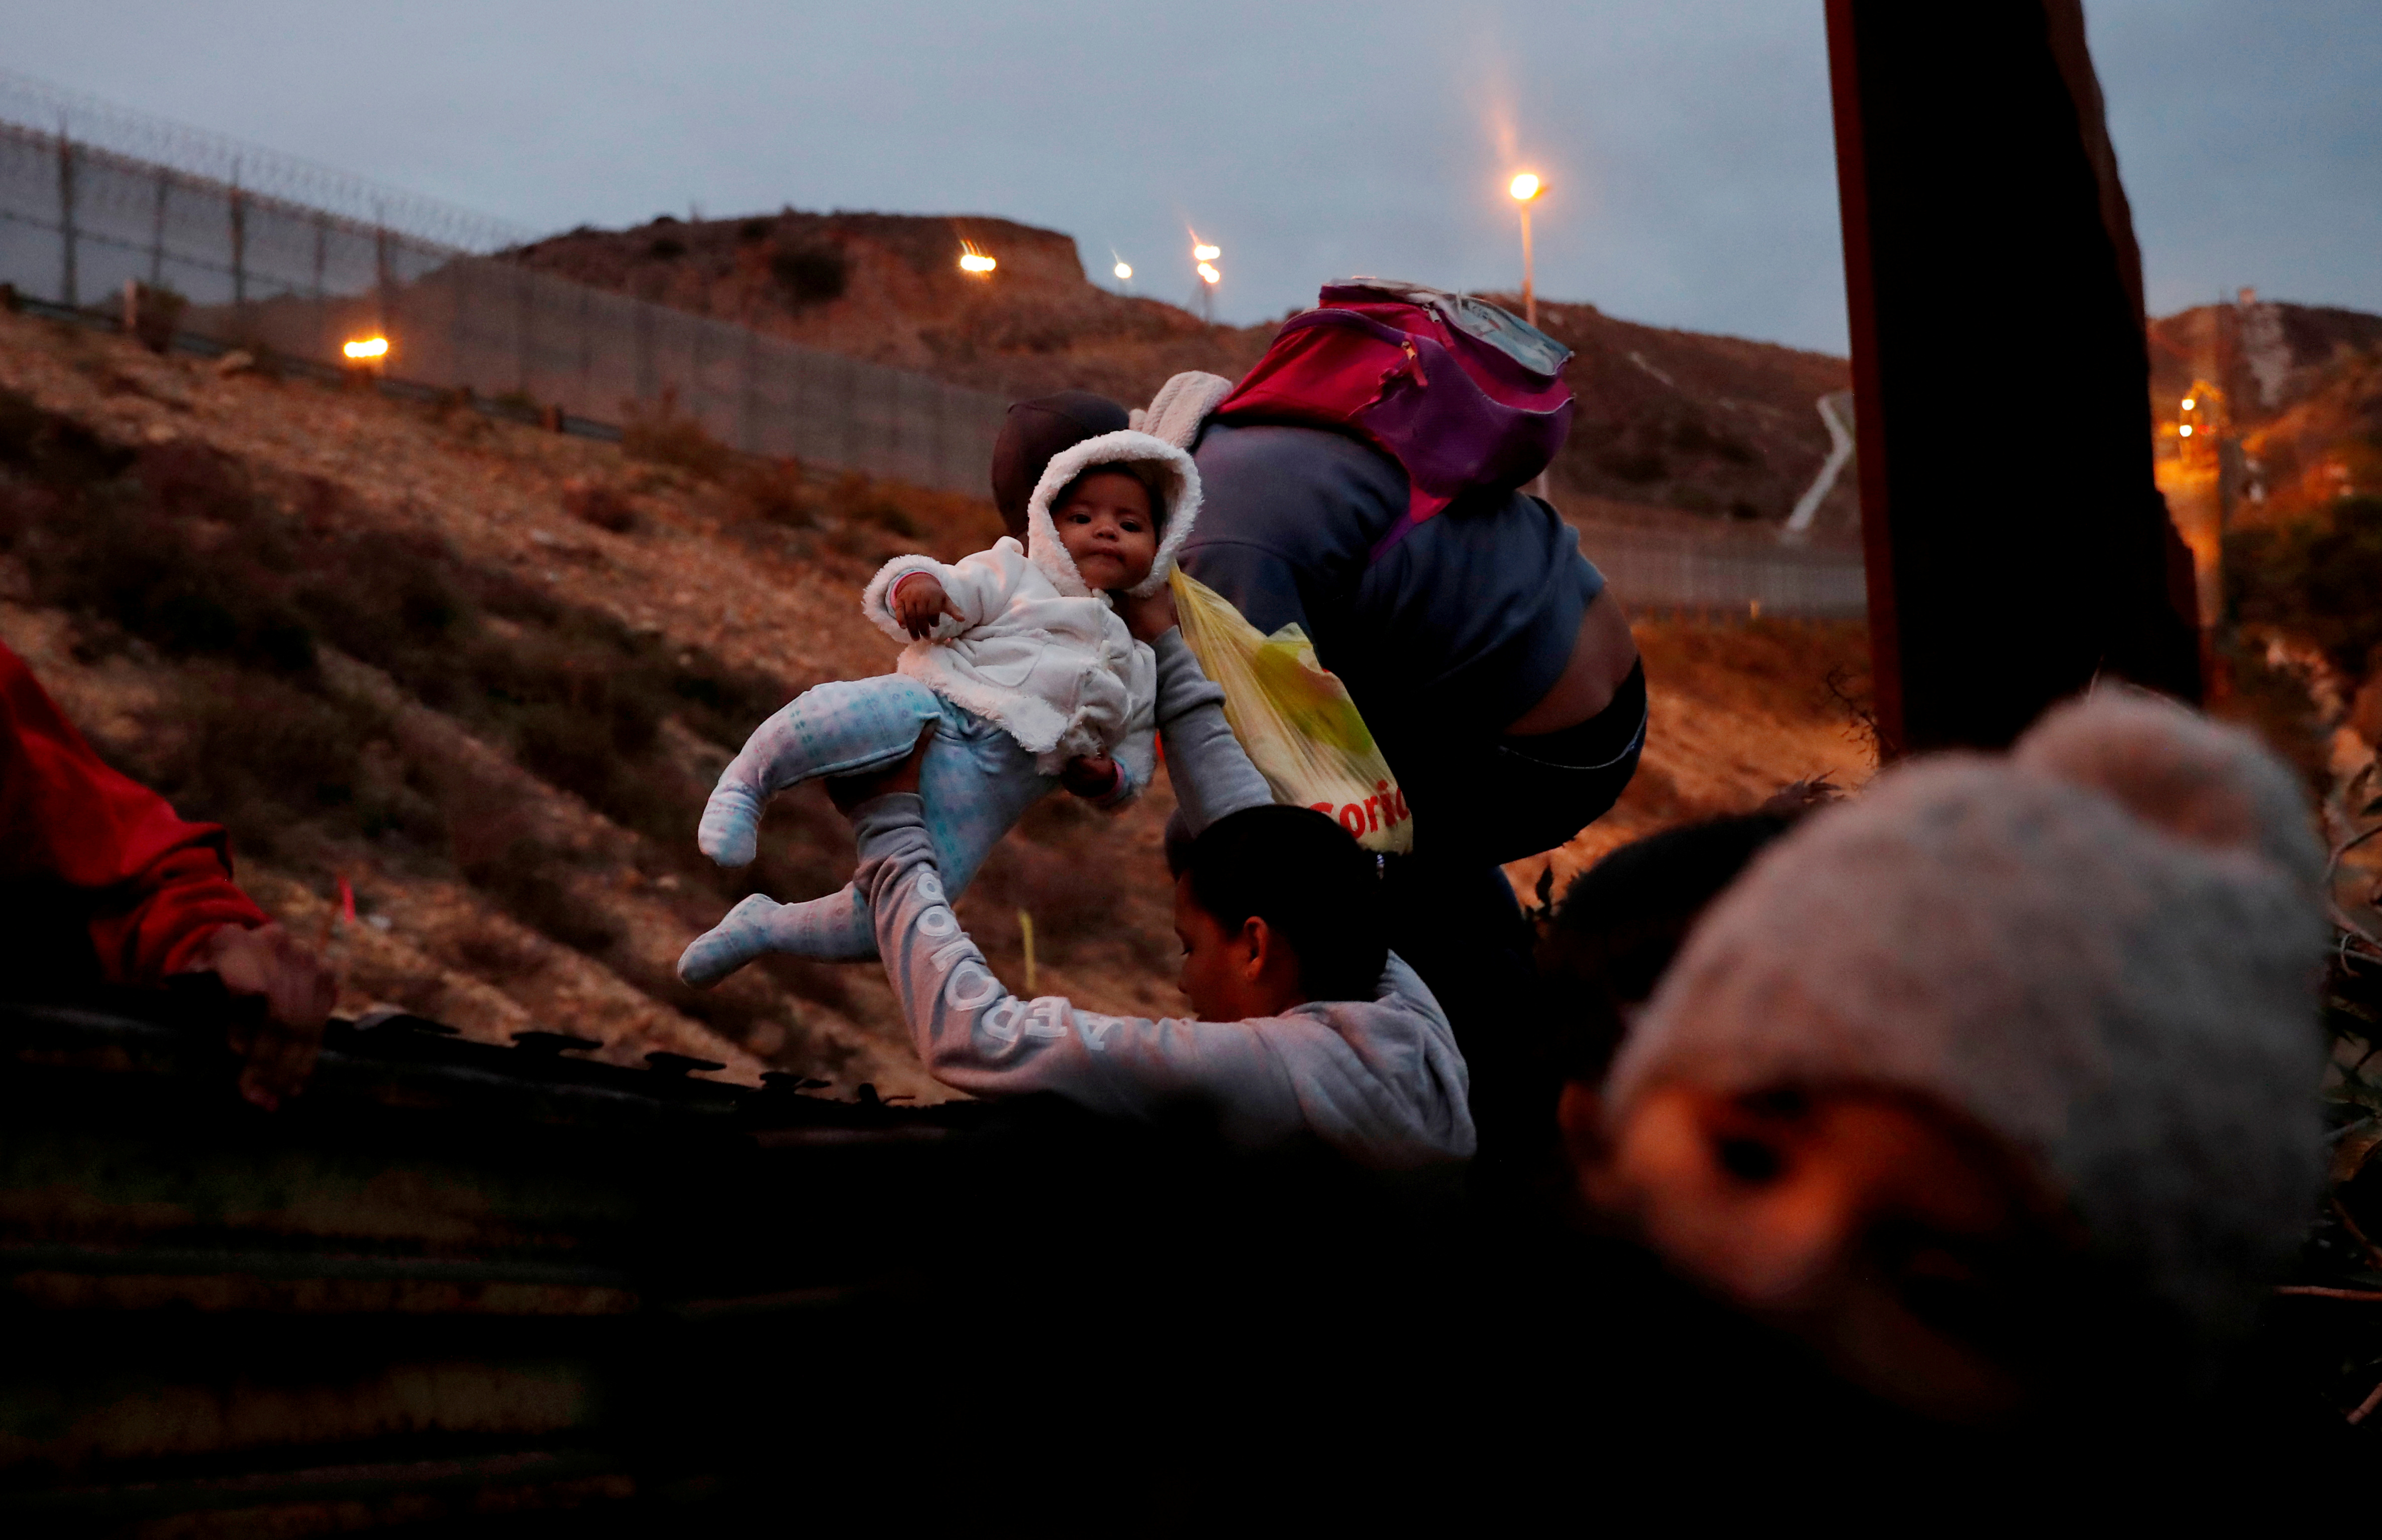 "Honduran migrants, part of a caravan of migrants from Central America traveling with the intention of reaching the U.S. jump over a border fence into the U.S. from Tijuana, Mexico December 14, 2018. Reuters photographer Leah Millis: ""A group of Honduran families had arrived at the beach earlier in the day to cross into the U.S. but found the two possible spots were impassable. So they turned around and walked for another hour to get to this spot, they were really determined. There were several babies in the group and the day had been so long and trying for them that they were asleep in their parent's arms. It was only until they were being passed over the fence that they woke up. This baby stayed quite calm during the process. Border Patrol picked them up quickly, which is something they wanted so they could apply for asylum."" REUTERS/Leah Millis"